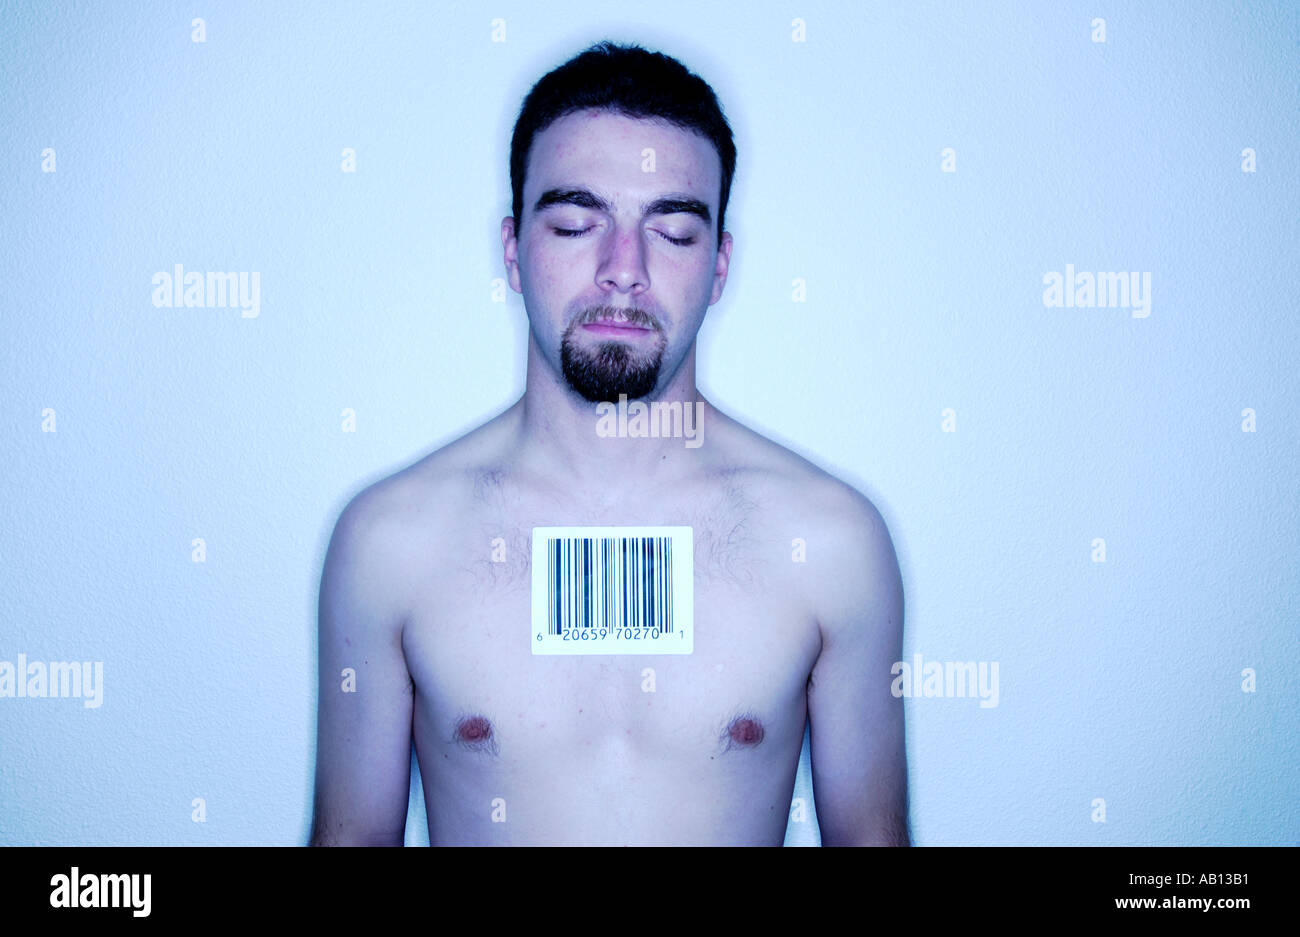 Man with barcode label on chest - Stock Image